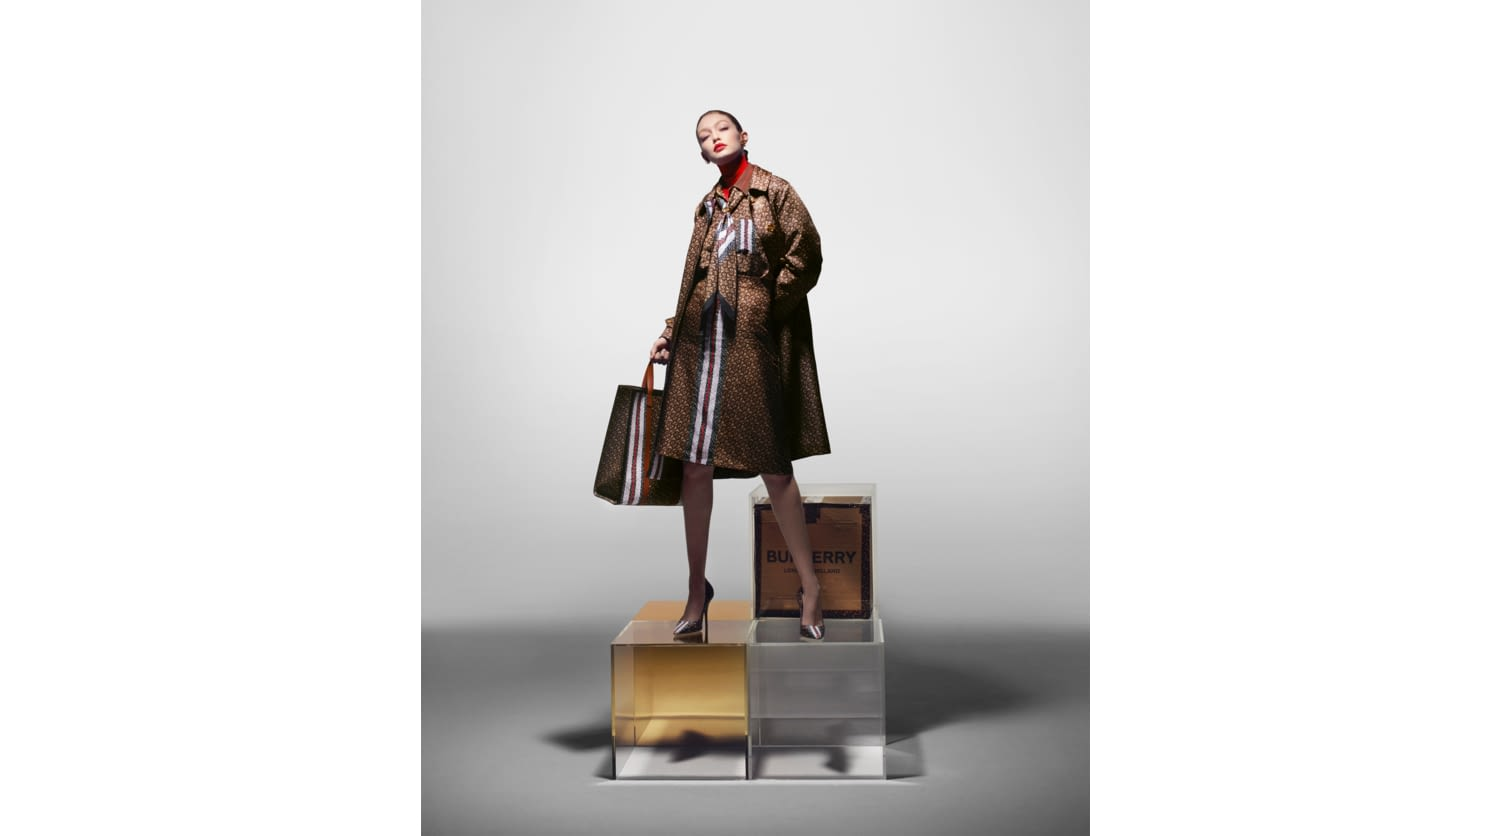 Burberry Debuts Monogram Collection Through A Campaign Starring Gigi Hadid c Courtesy of Burberry _ Nick Knight_005.jpg